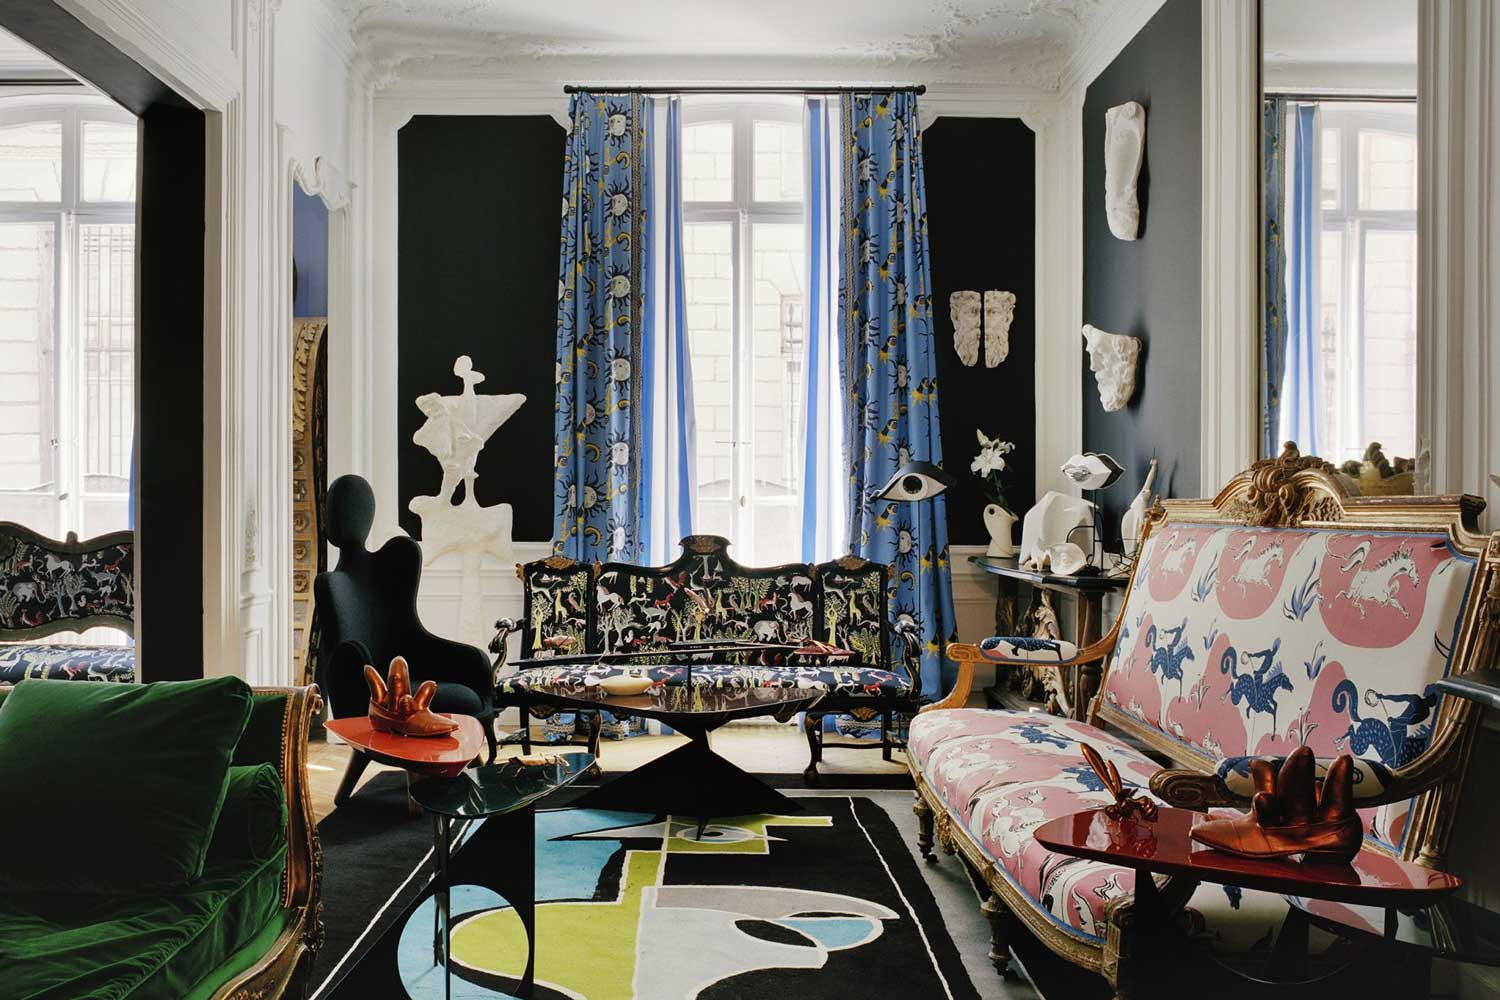 Living room in a Parisien-looking apartment mixing bold figurative and abstract designs